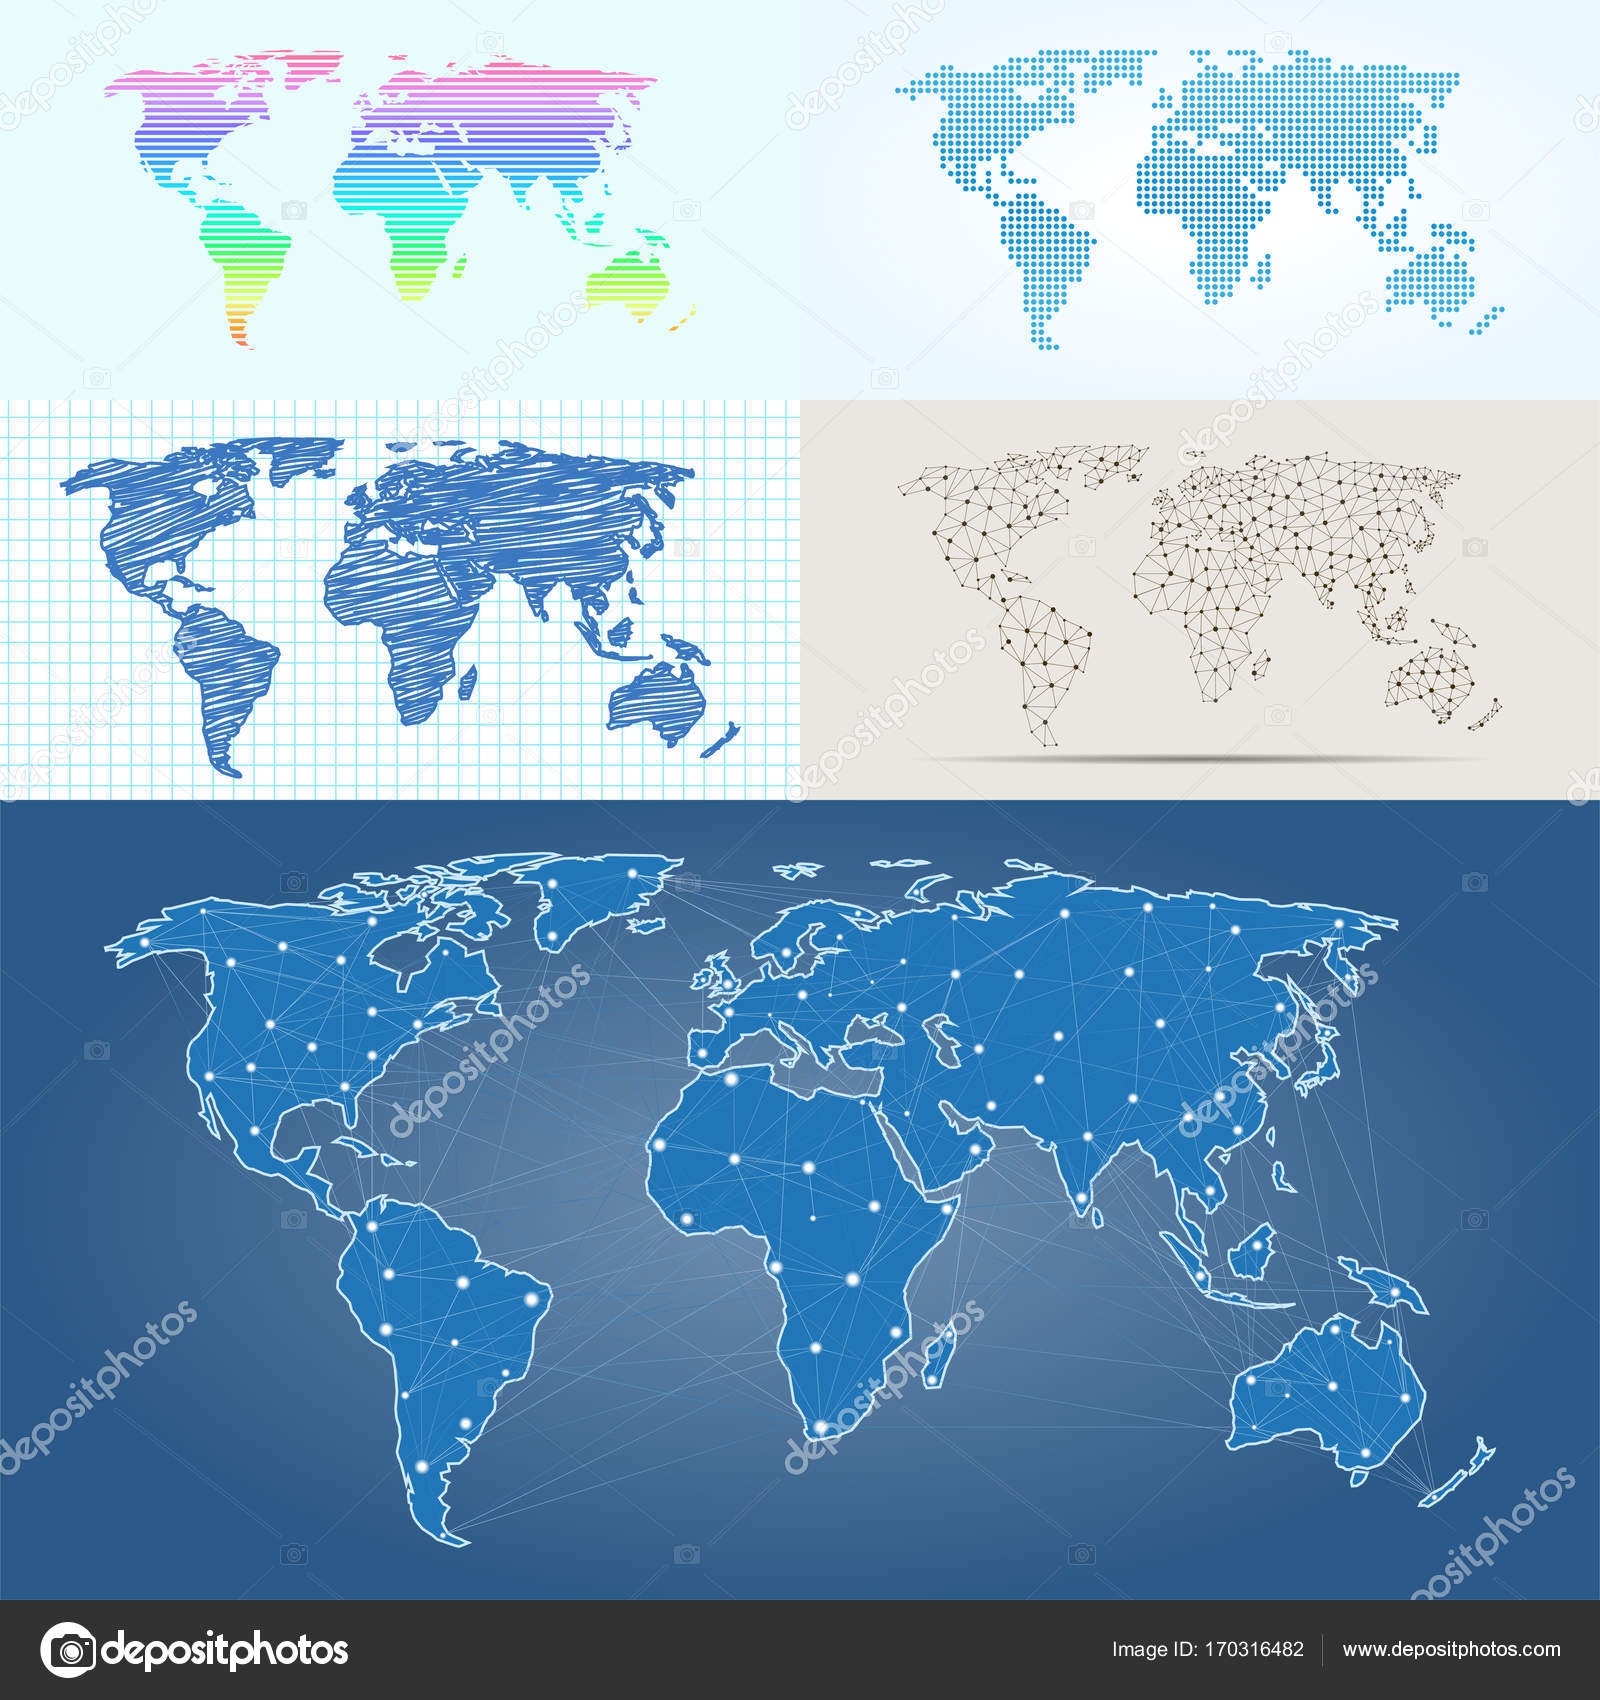 Maps globe earth contour outline silhouette world mapping maps globe earth contour outline silhouette world mapping texture vector illustration international art worldwide global ocean cartography gumiabroncs Images